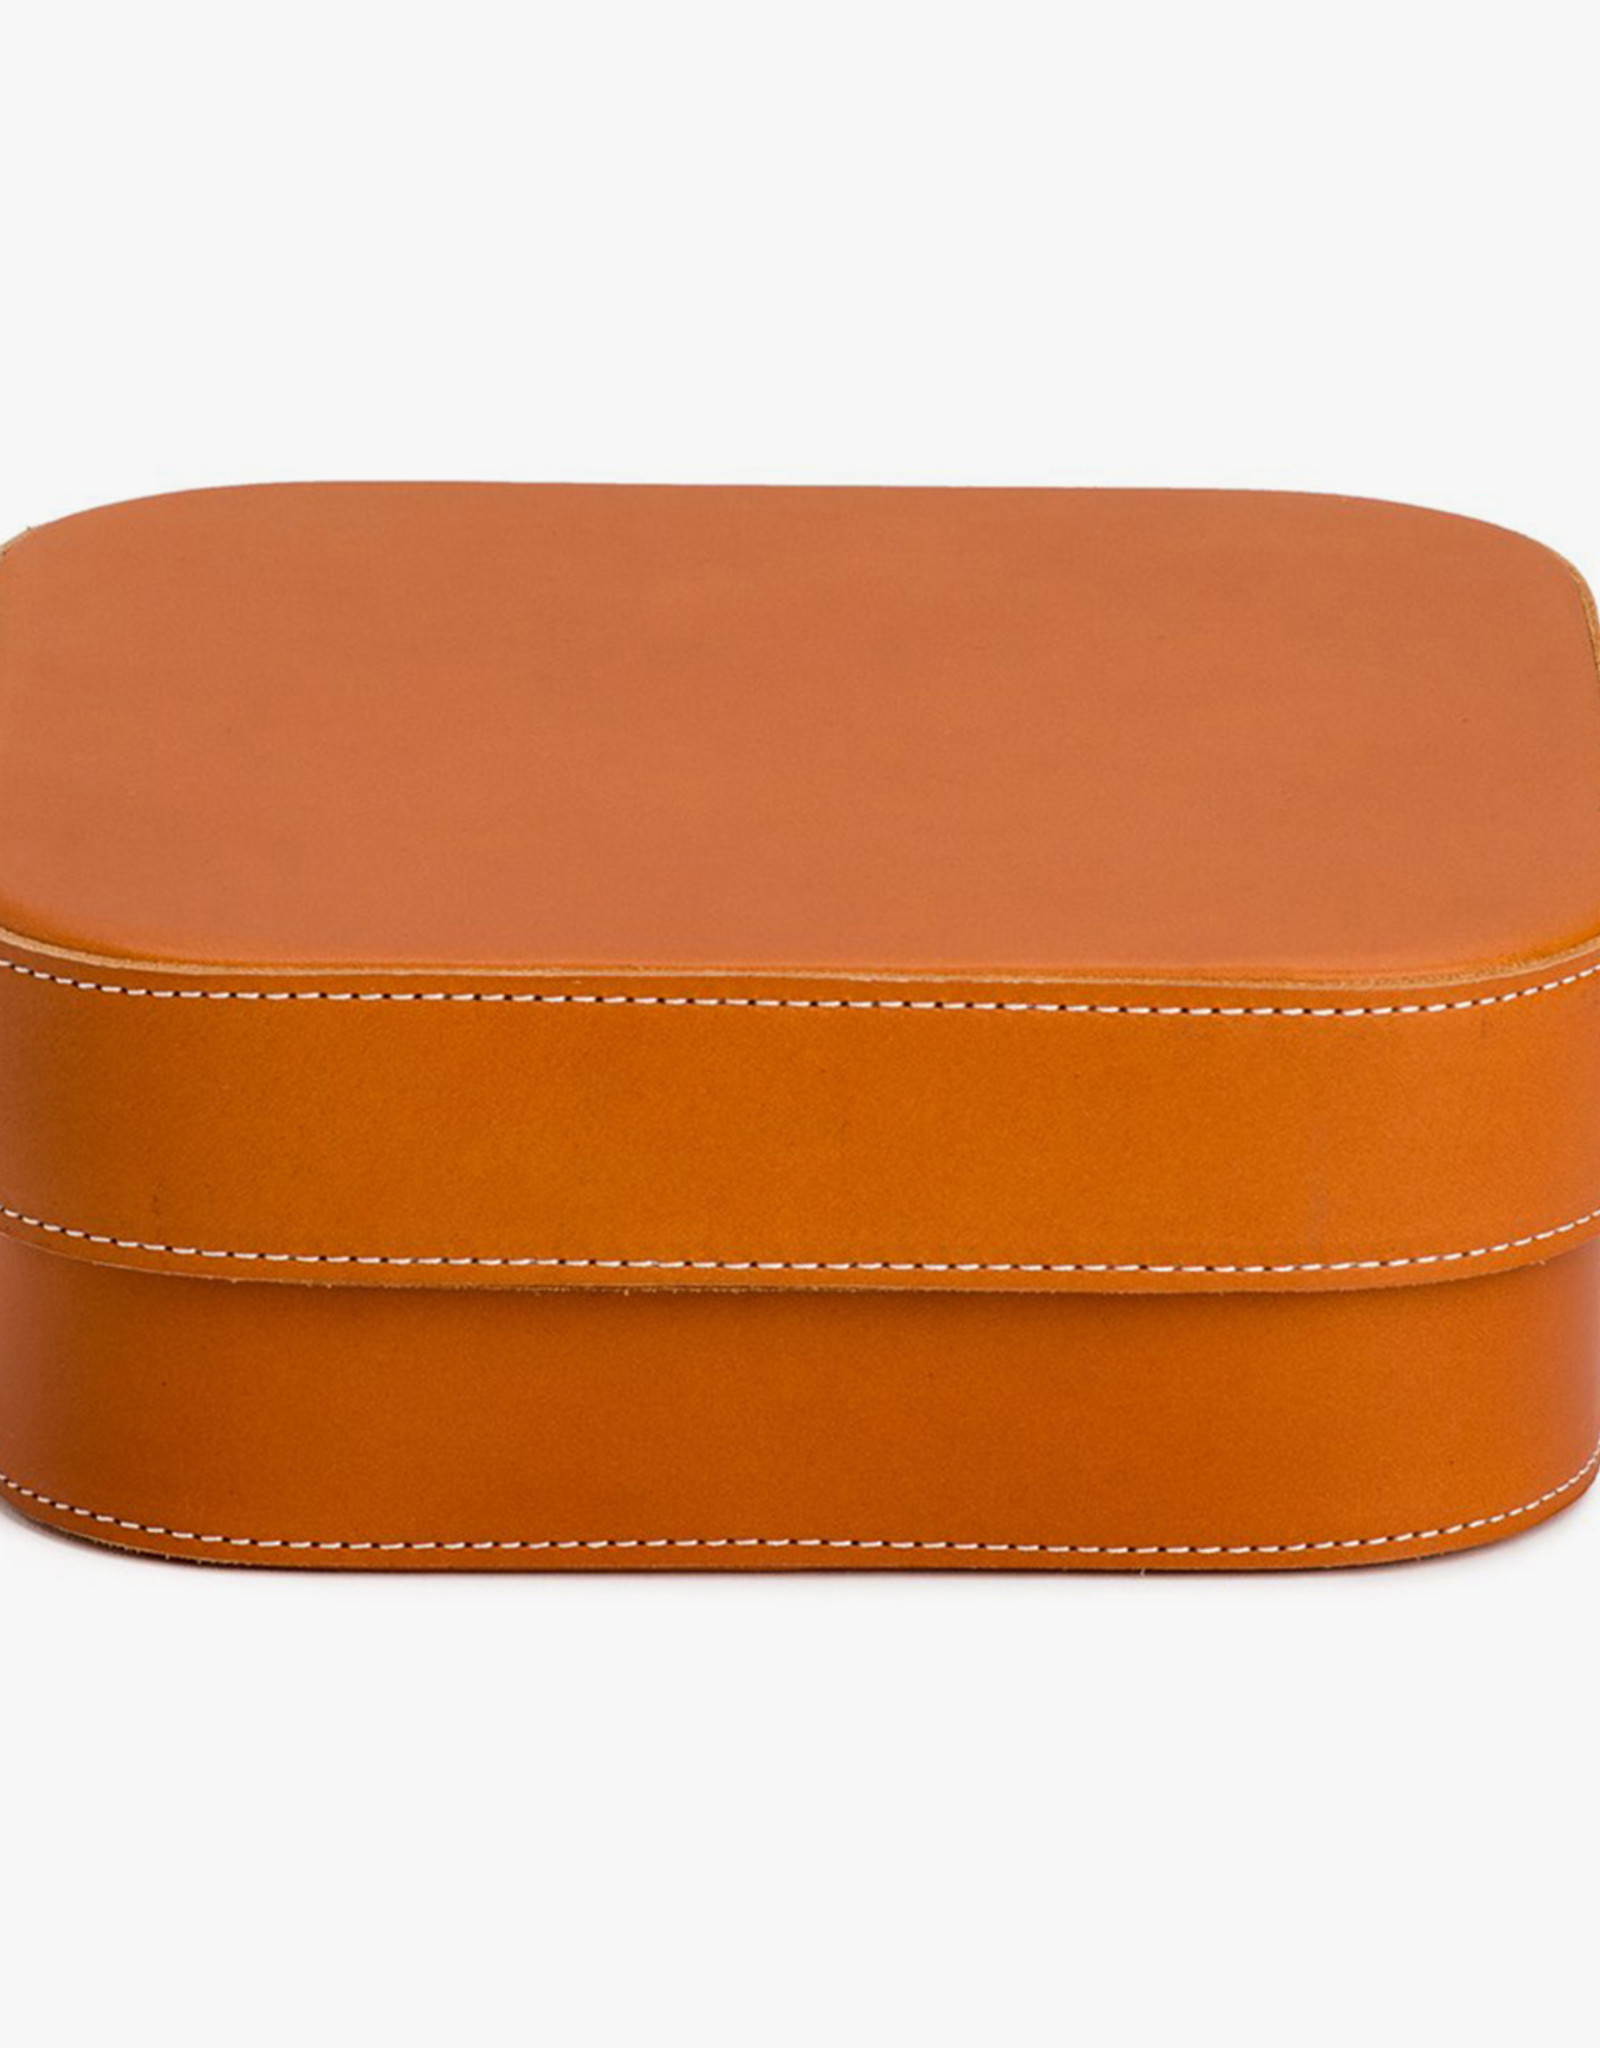 Extra Large Leather Box by Palmgrens | Tan leather